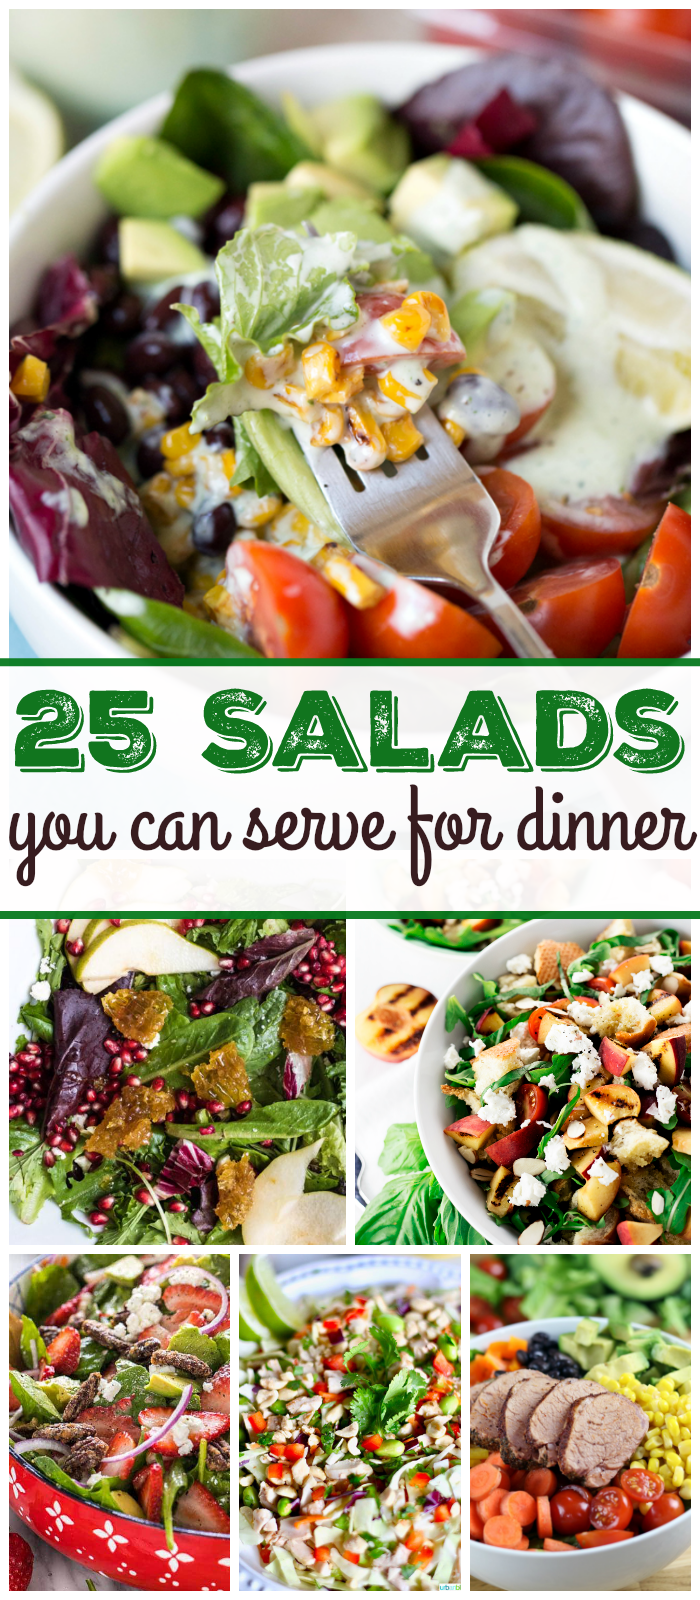 Wow your guests with these 25 salads for dinner that are quick and easy to make and super yummy! | Design Dazzle